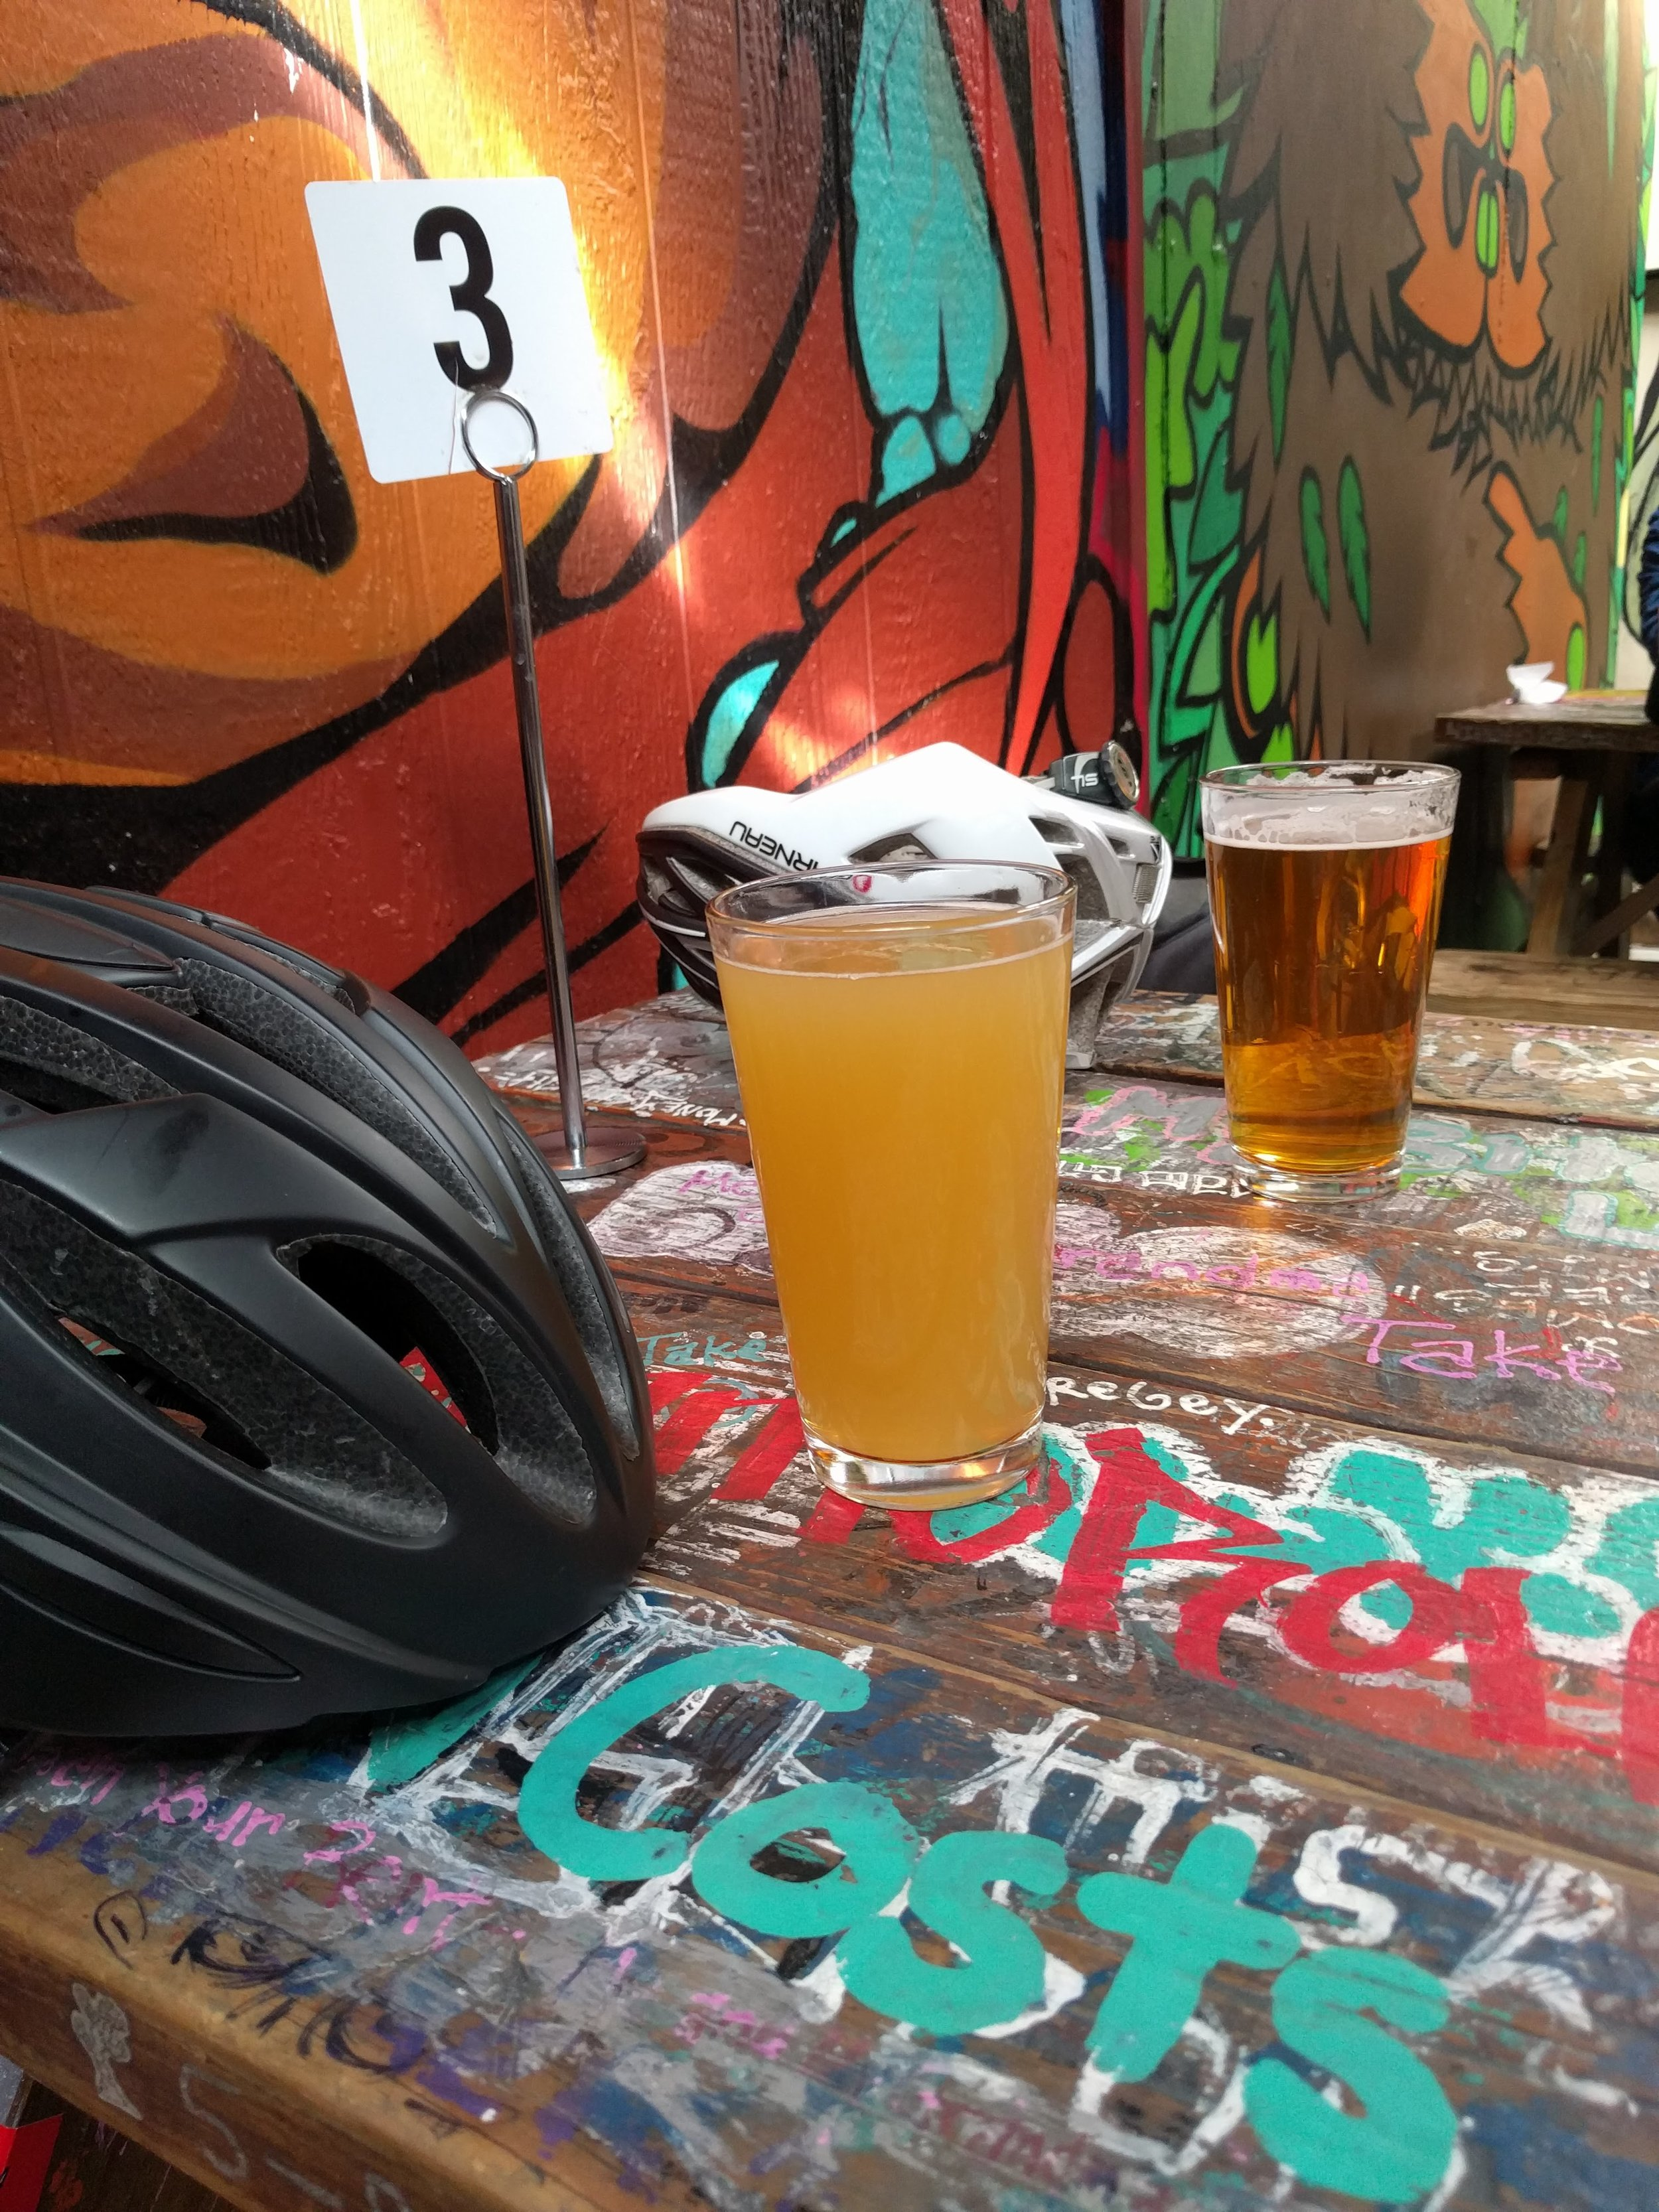 Pints, helmets, grungy tables, and burgers on the way. What more could you want from a Saturday afternoon?